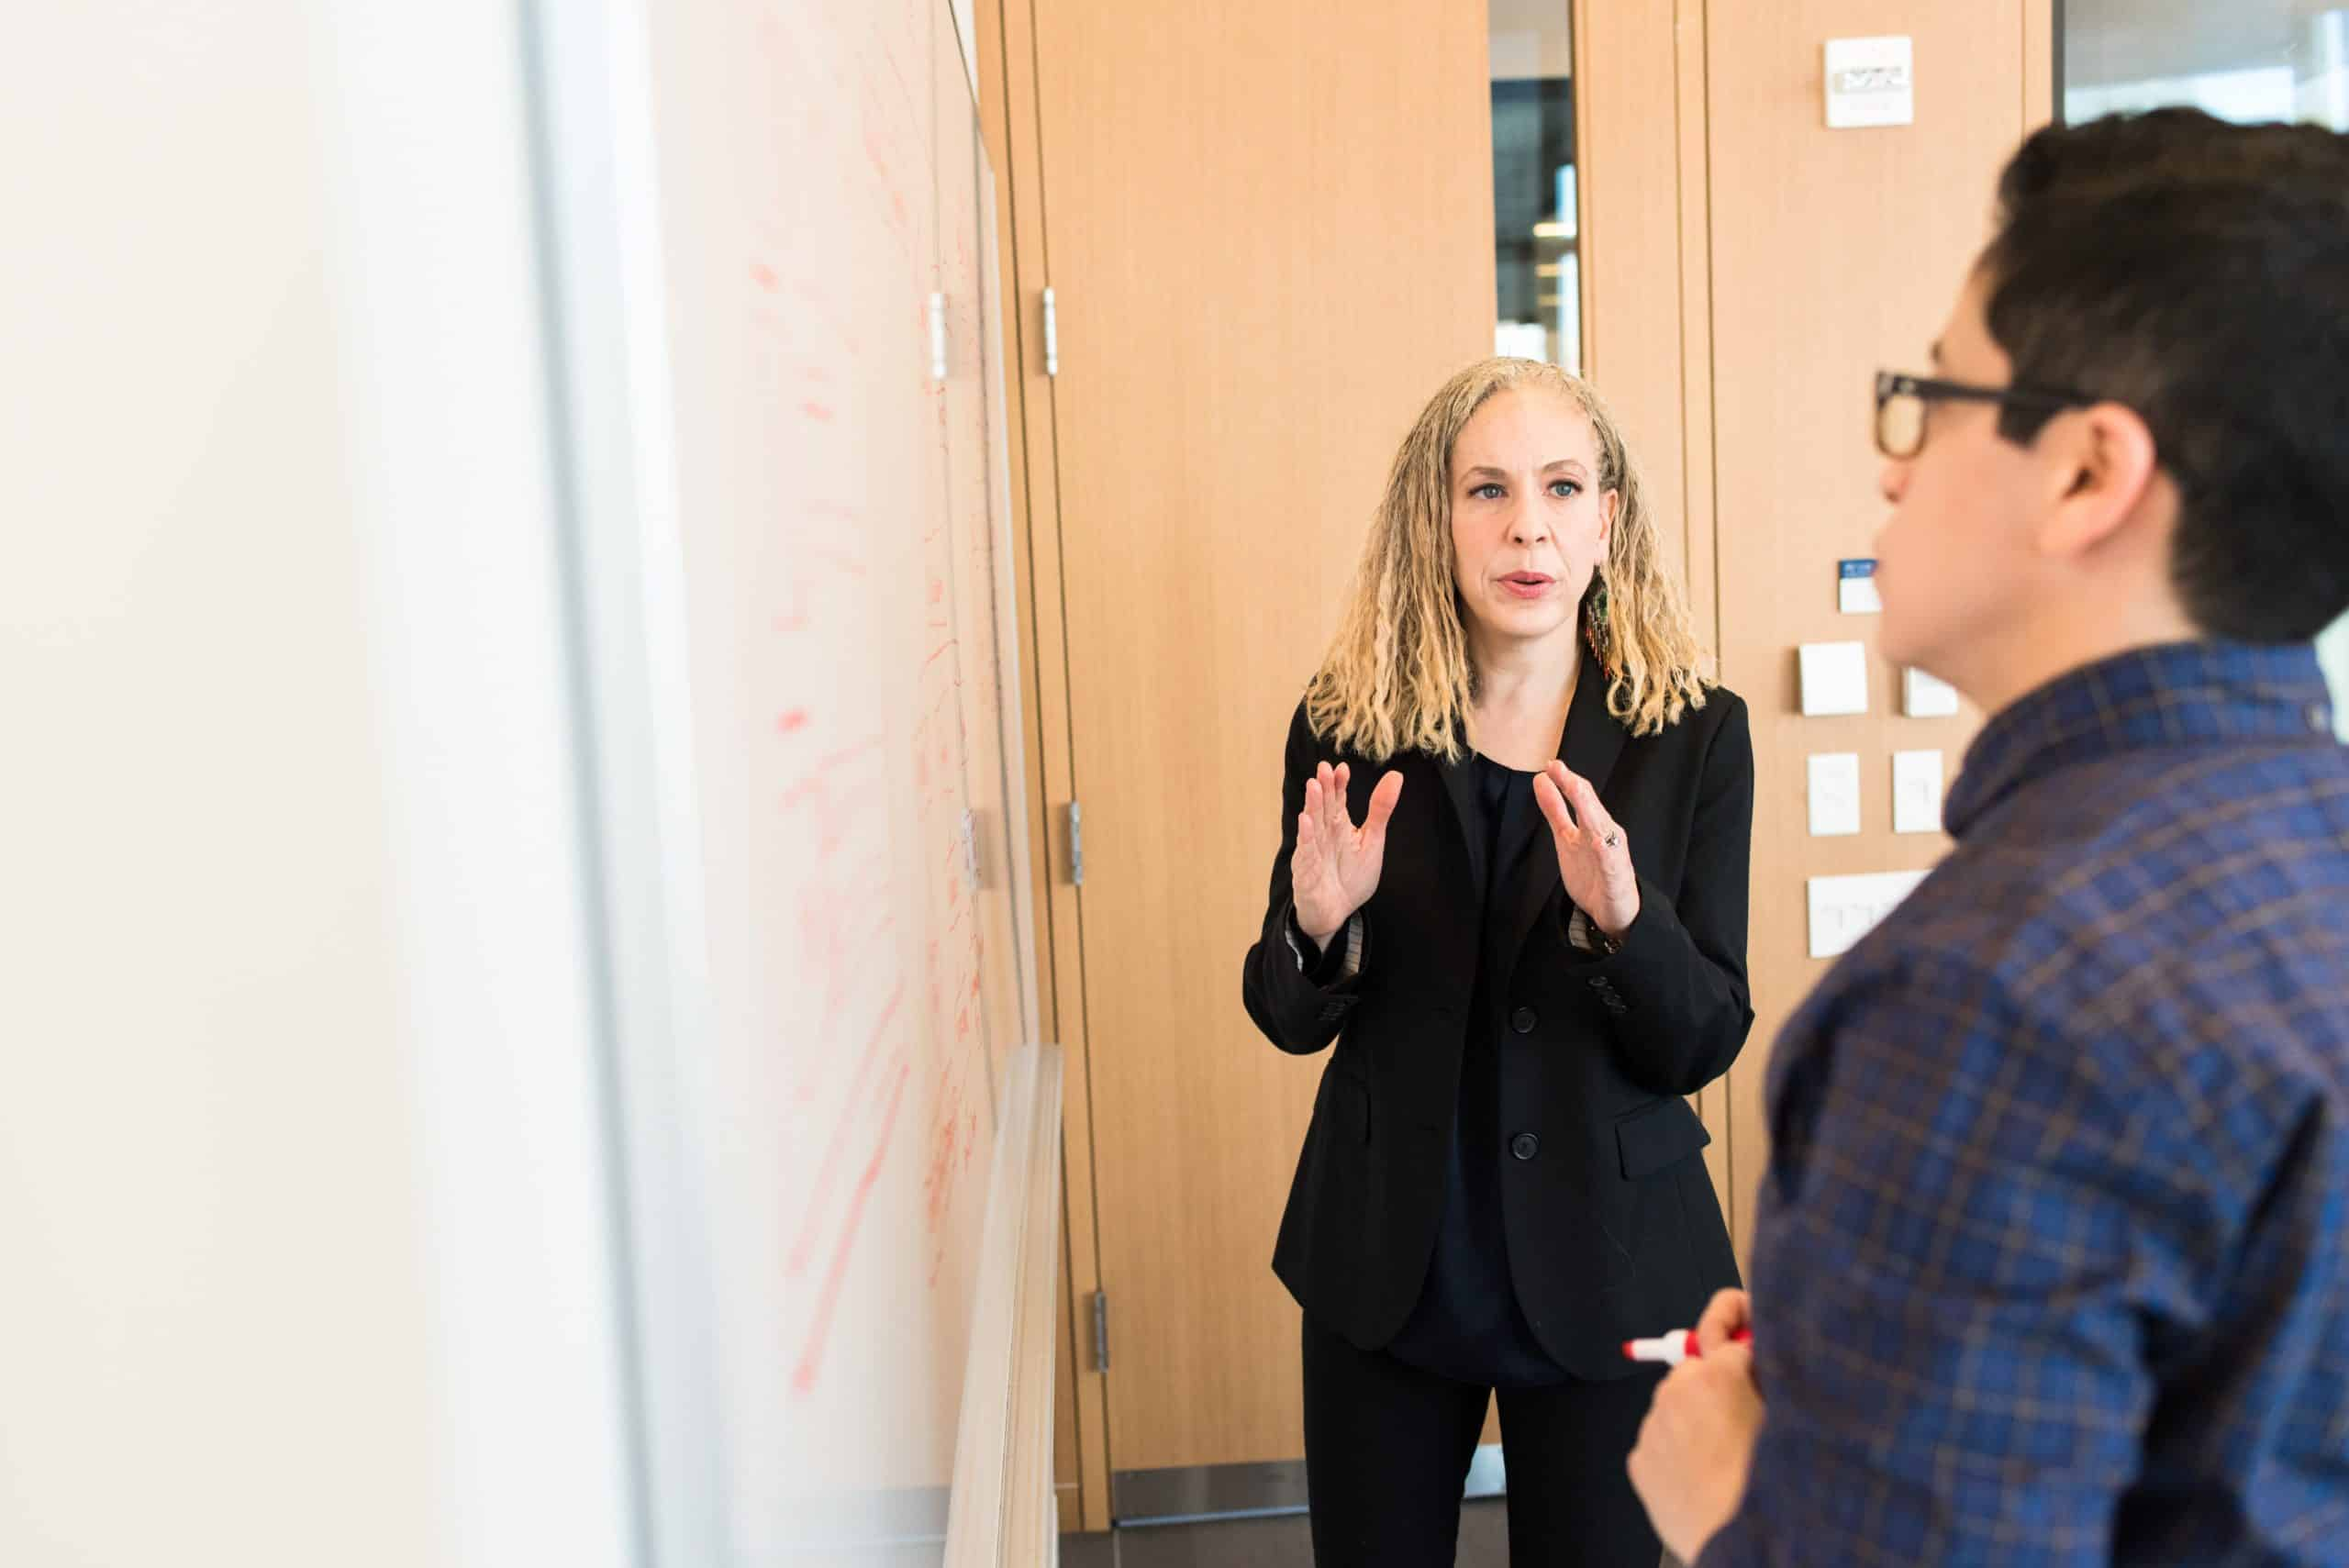 Woman speaking to coworker in front of a white board